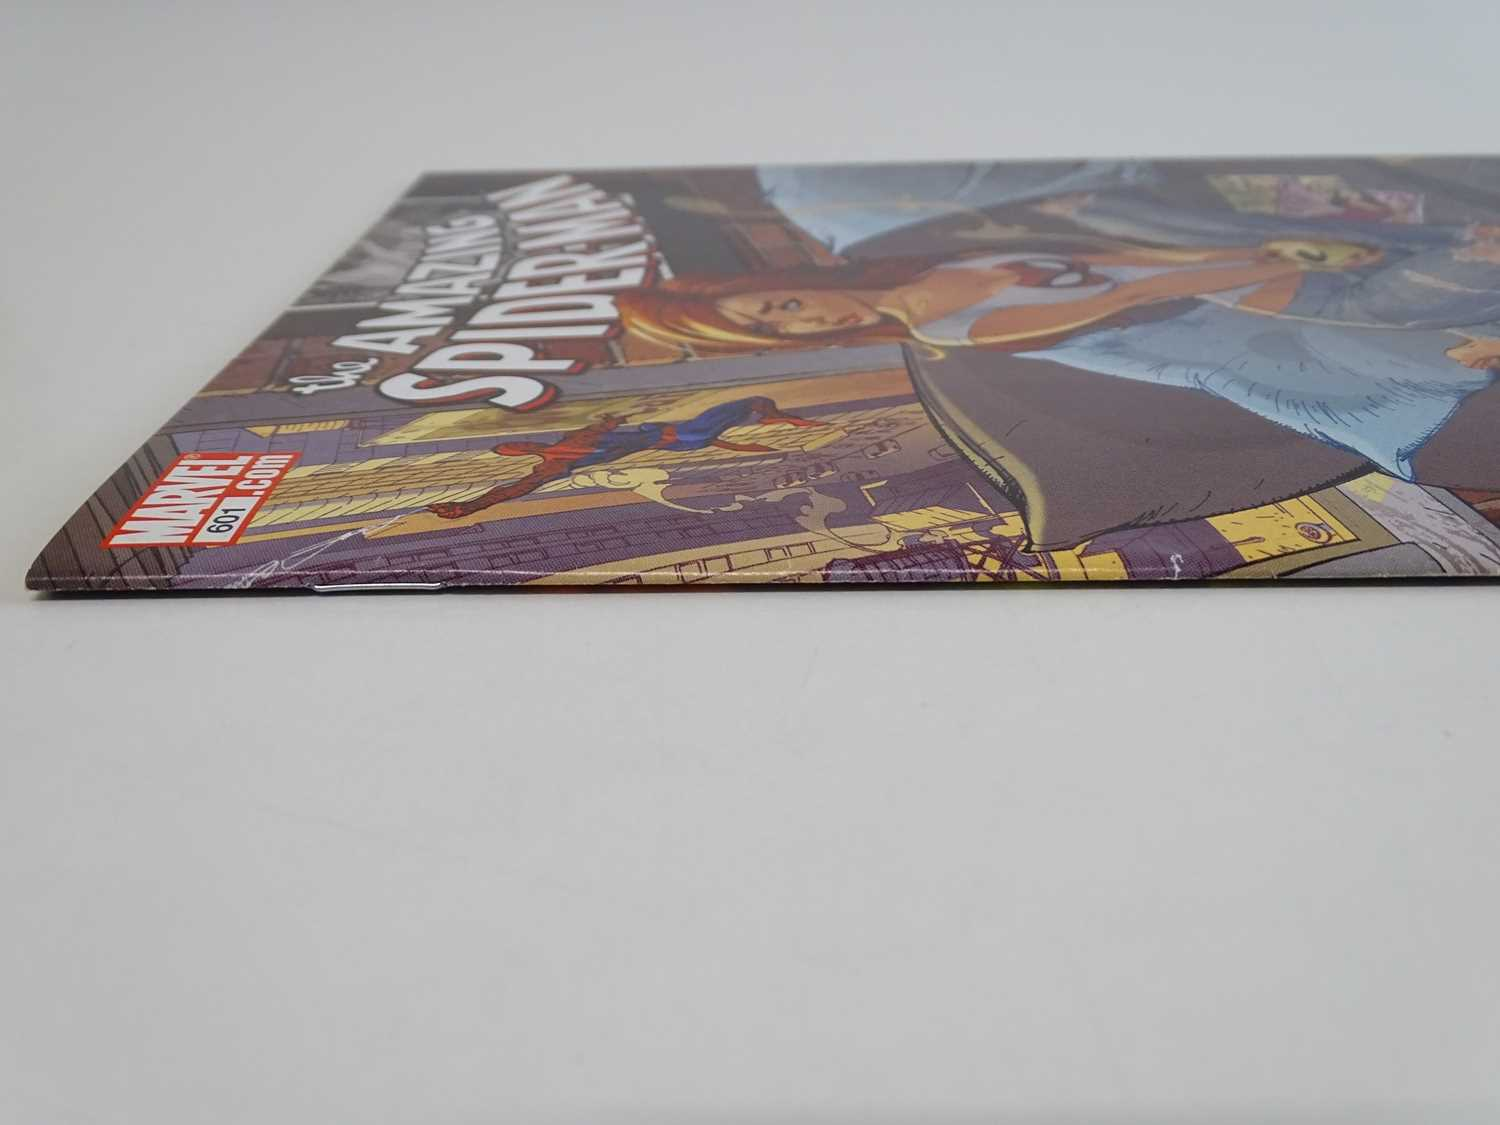 AMAZING SPIDER-MAN #601 - (2009 - MARVEL) - First Printing - Jessica Jones appearance + New Avengers - Image 8 of 9